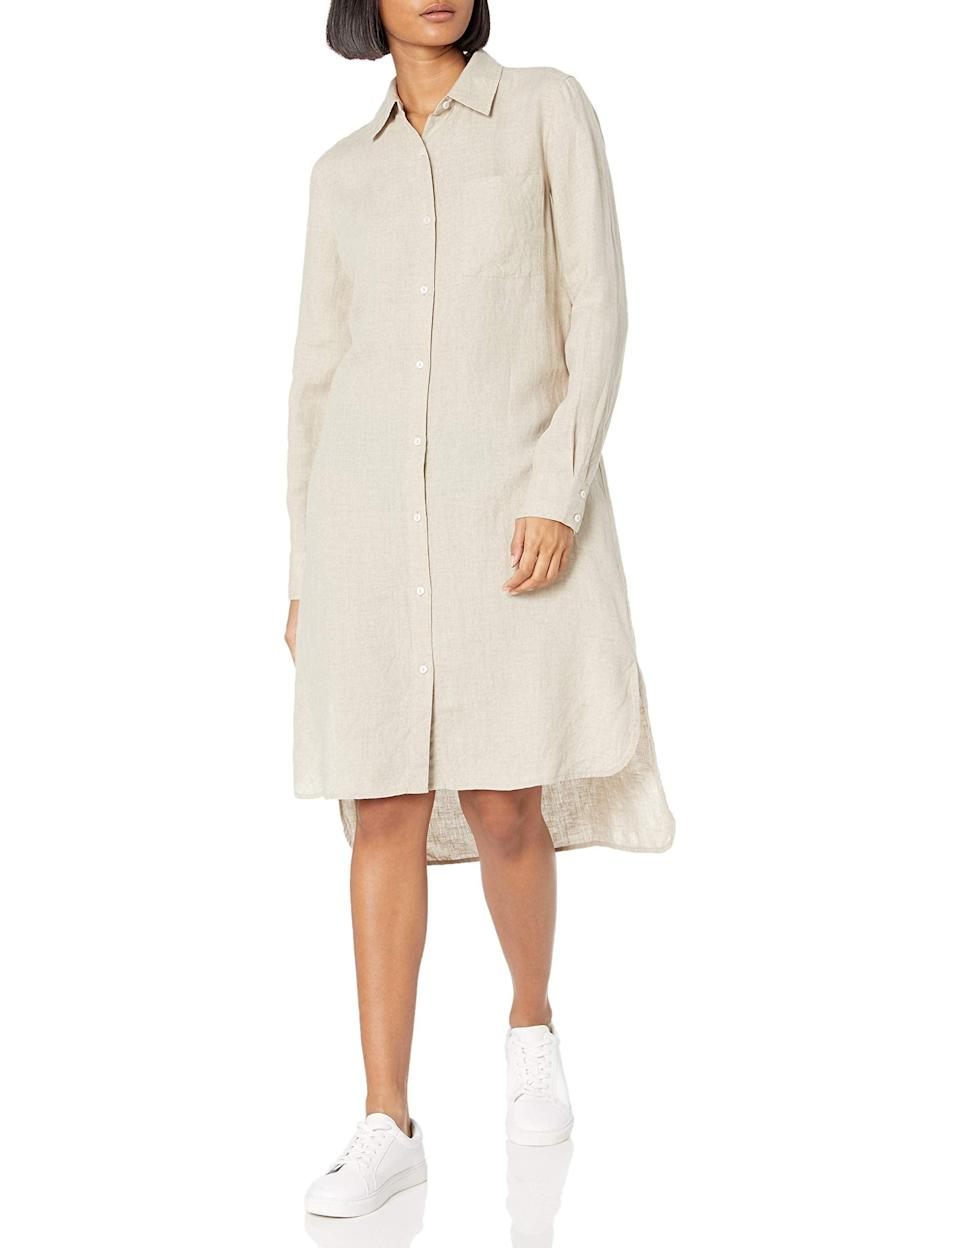 """<br><br><strong>The Drop</strong> Celine Long Sleeve Loose-Fit Midi Shirt Dress, $, available at <a href=""""https://amzn.to/3c95Kka"""" rel=""""nofollow noopener"""" target=""""_blank"""" data-ylk=""""slk:Amazon Fashion"""" class=""""link rapid-noclick-resp"""">Amazon Fashion</a>"""